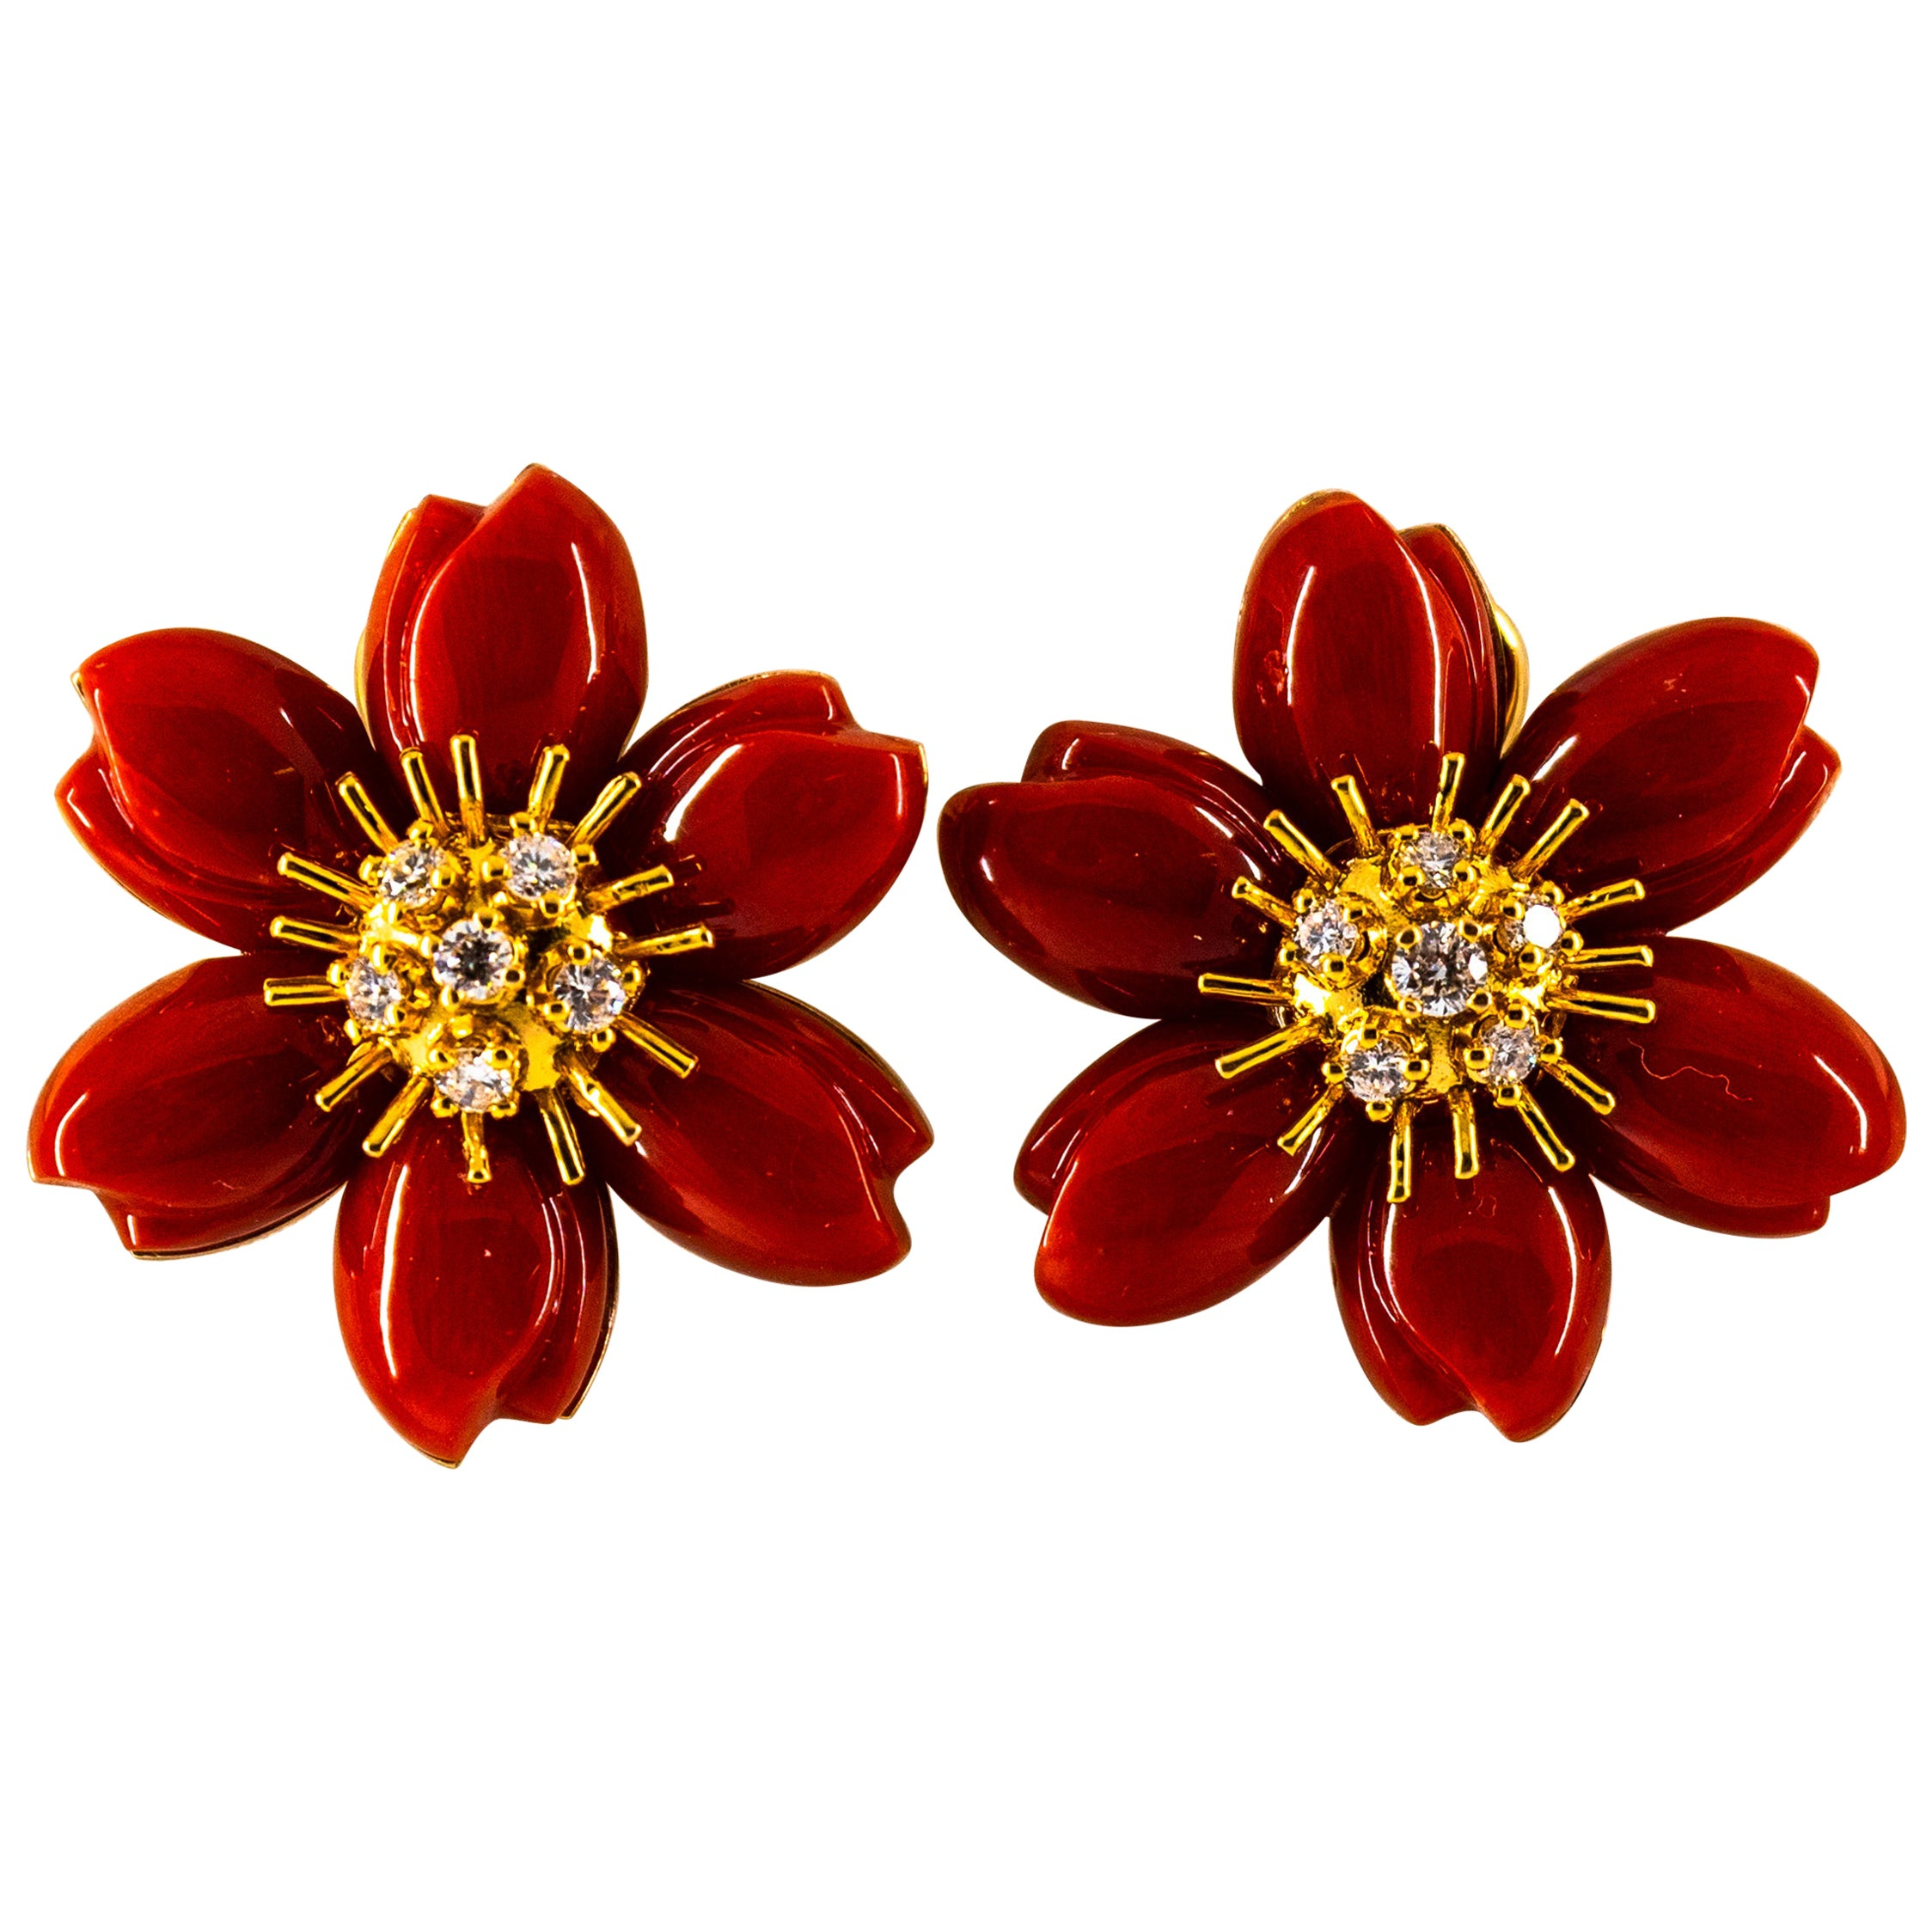 "0.60 Carat White Diamond Mediterranean Red Coral Yellow Gold ""Flowers"" Earrings"